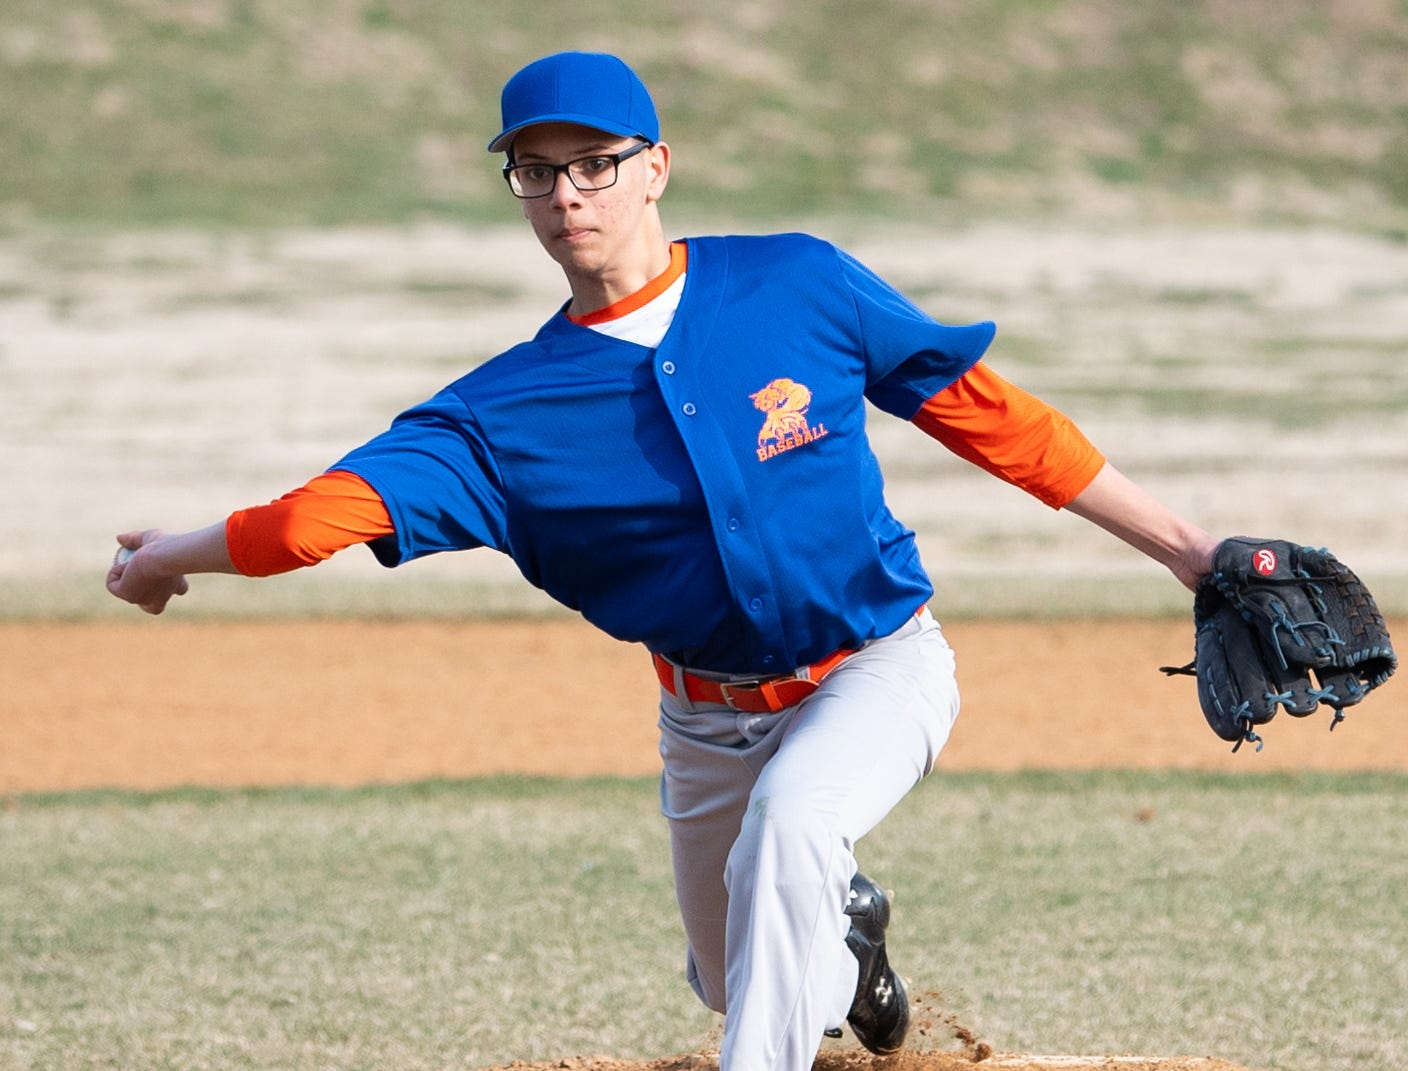 Luis Villa (10) looks to throw a curve ball during York High's scrimmage against Steel High, March 20, 2019 at Small Athletic Field.